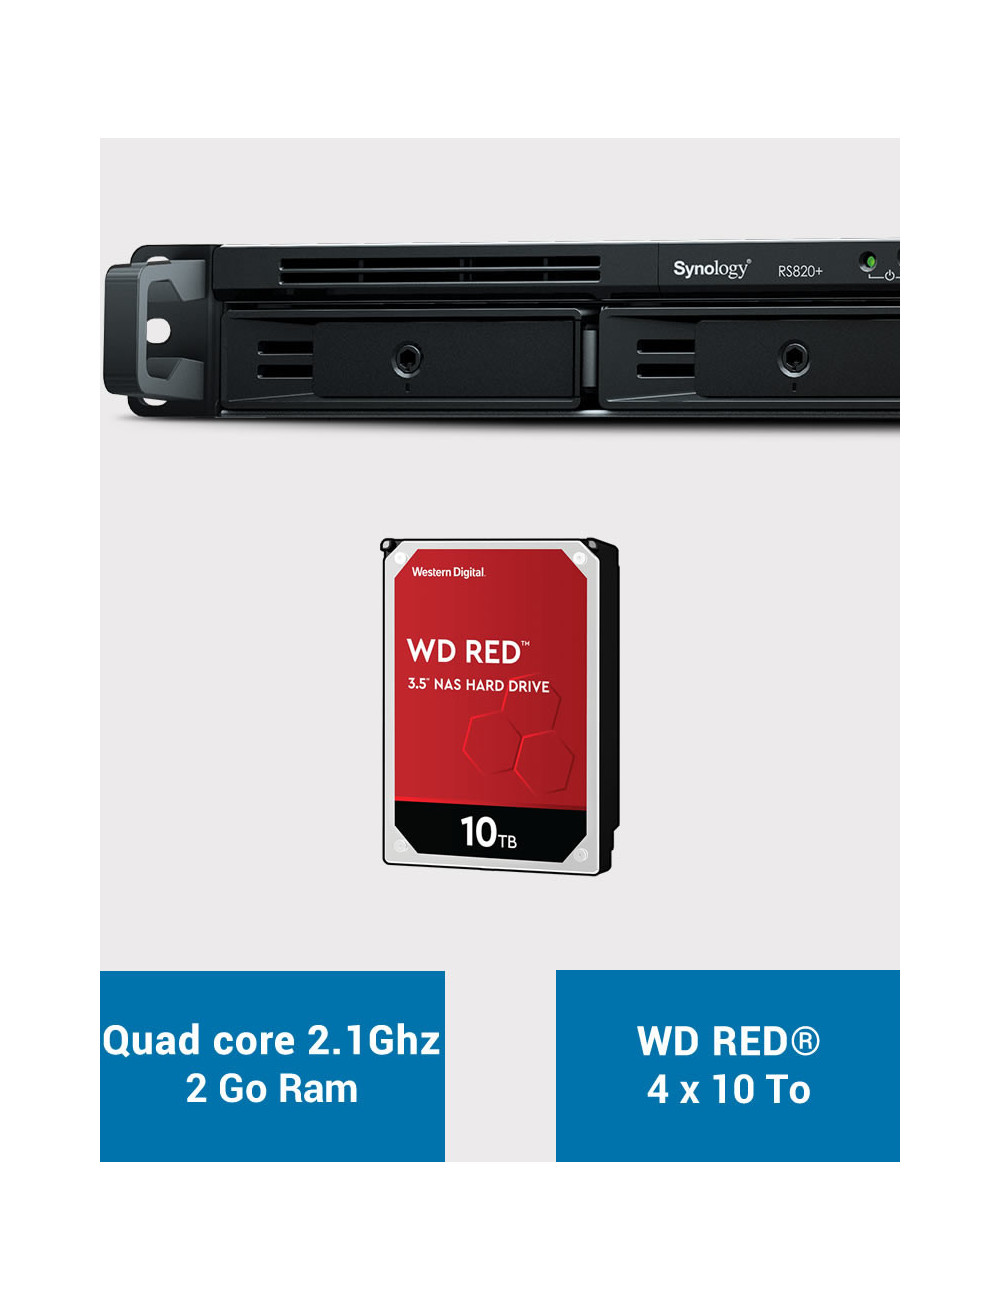 Synology RS820+ NAS Server WD RED 40TB (4x10TB)